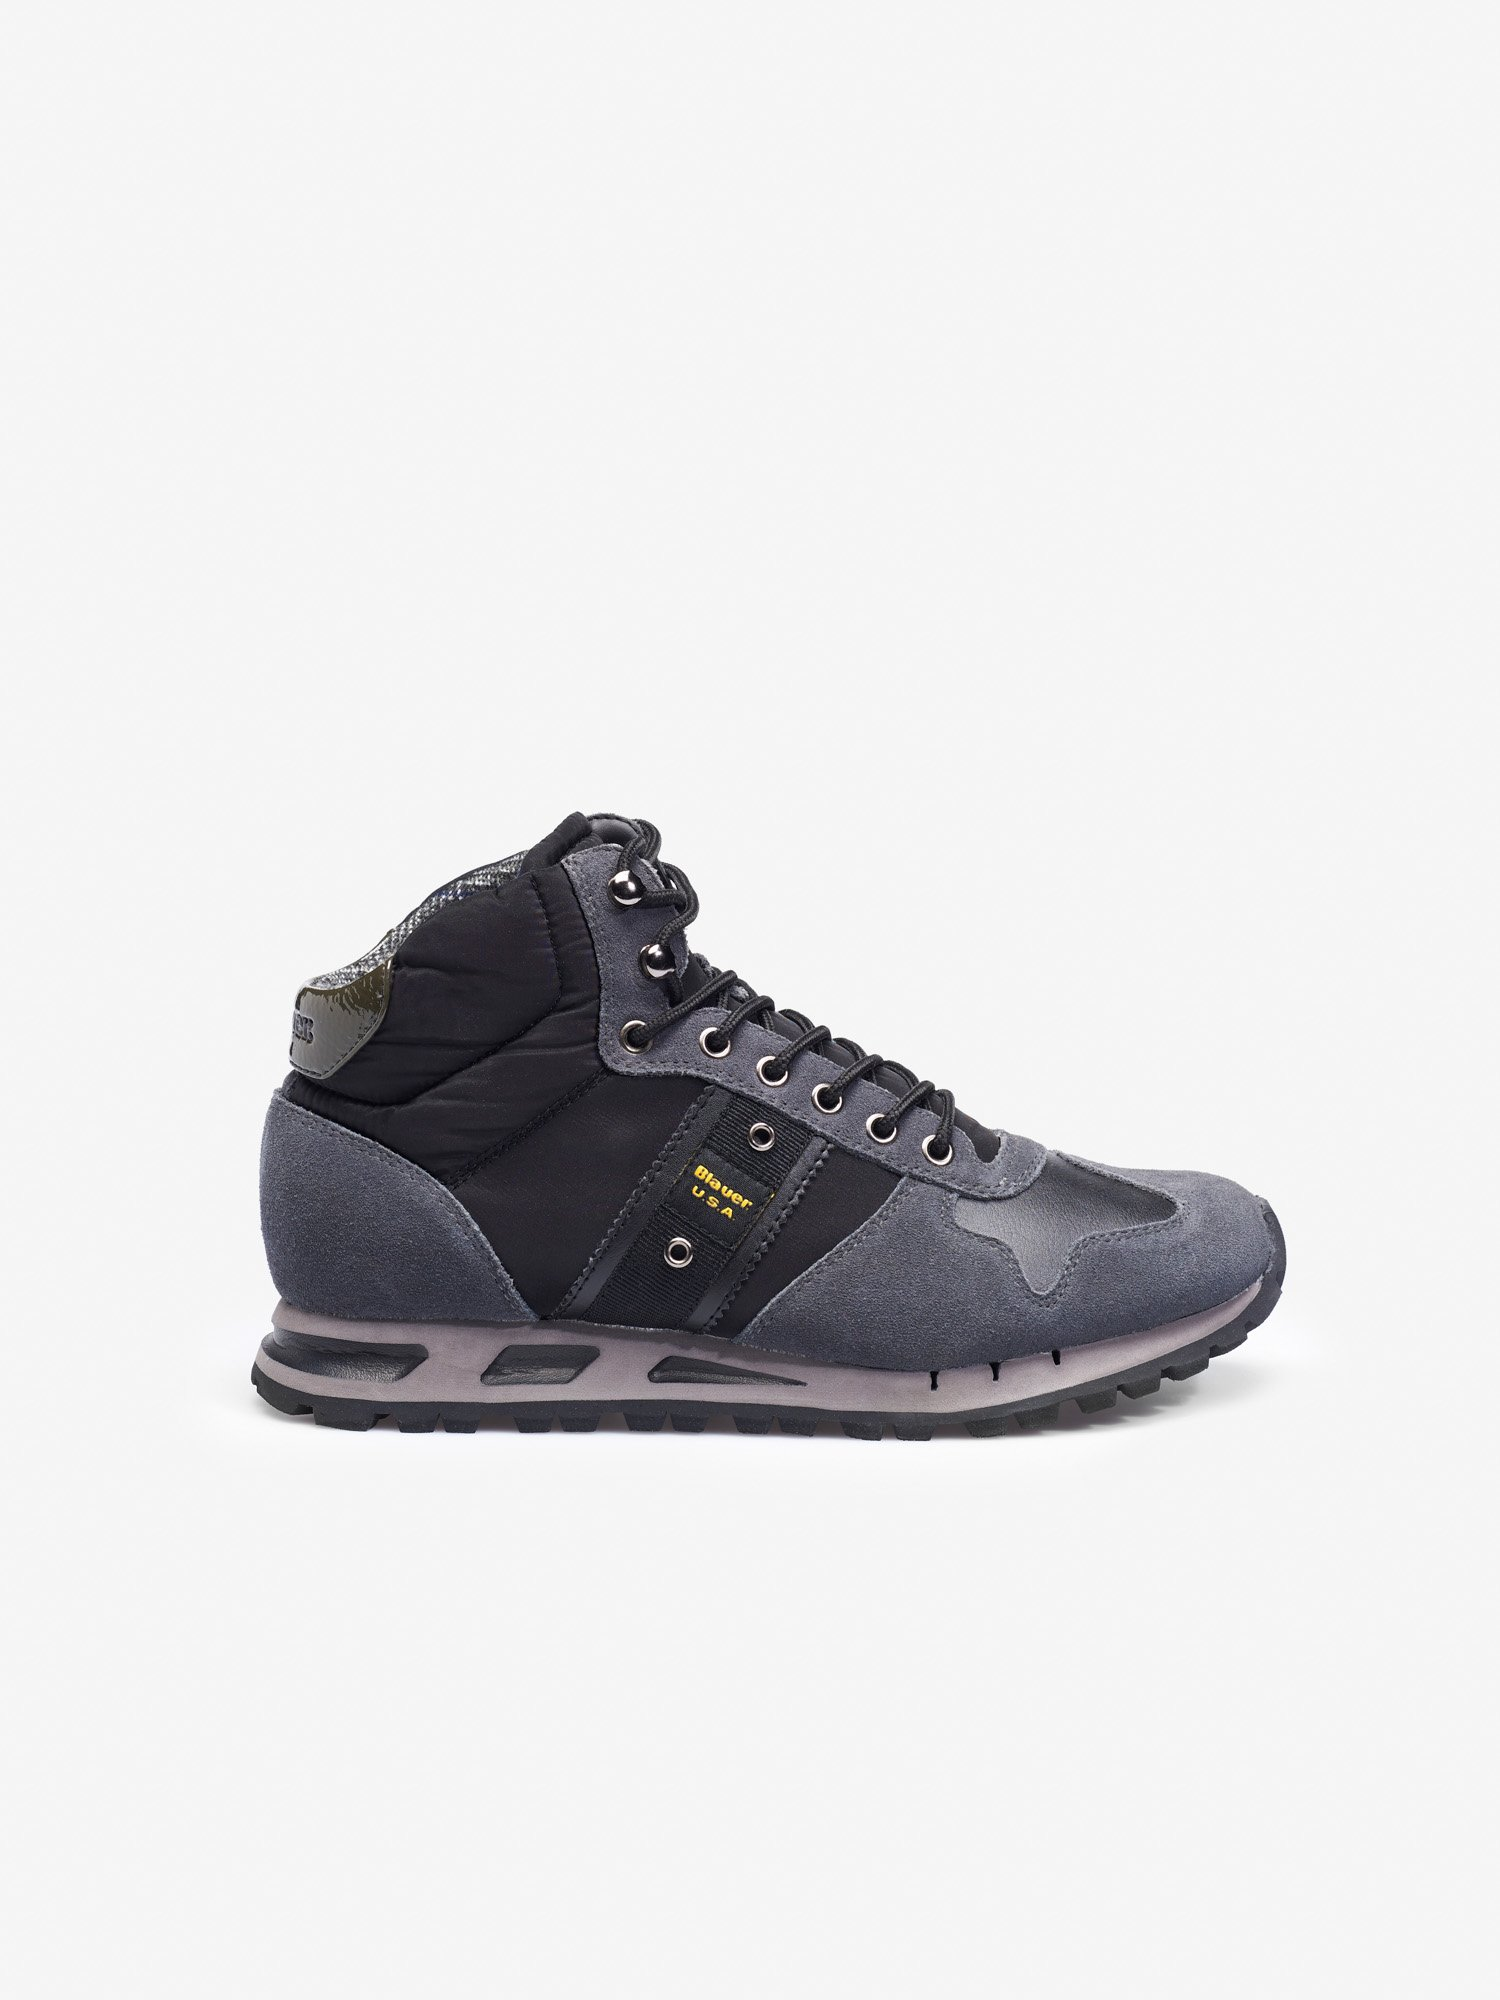 Blauer - MUSTANG HIGH-TOP TRAINERS - Dark Grey - Blauer